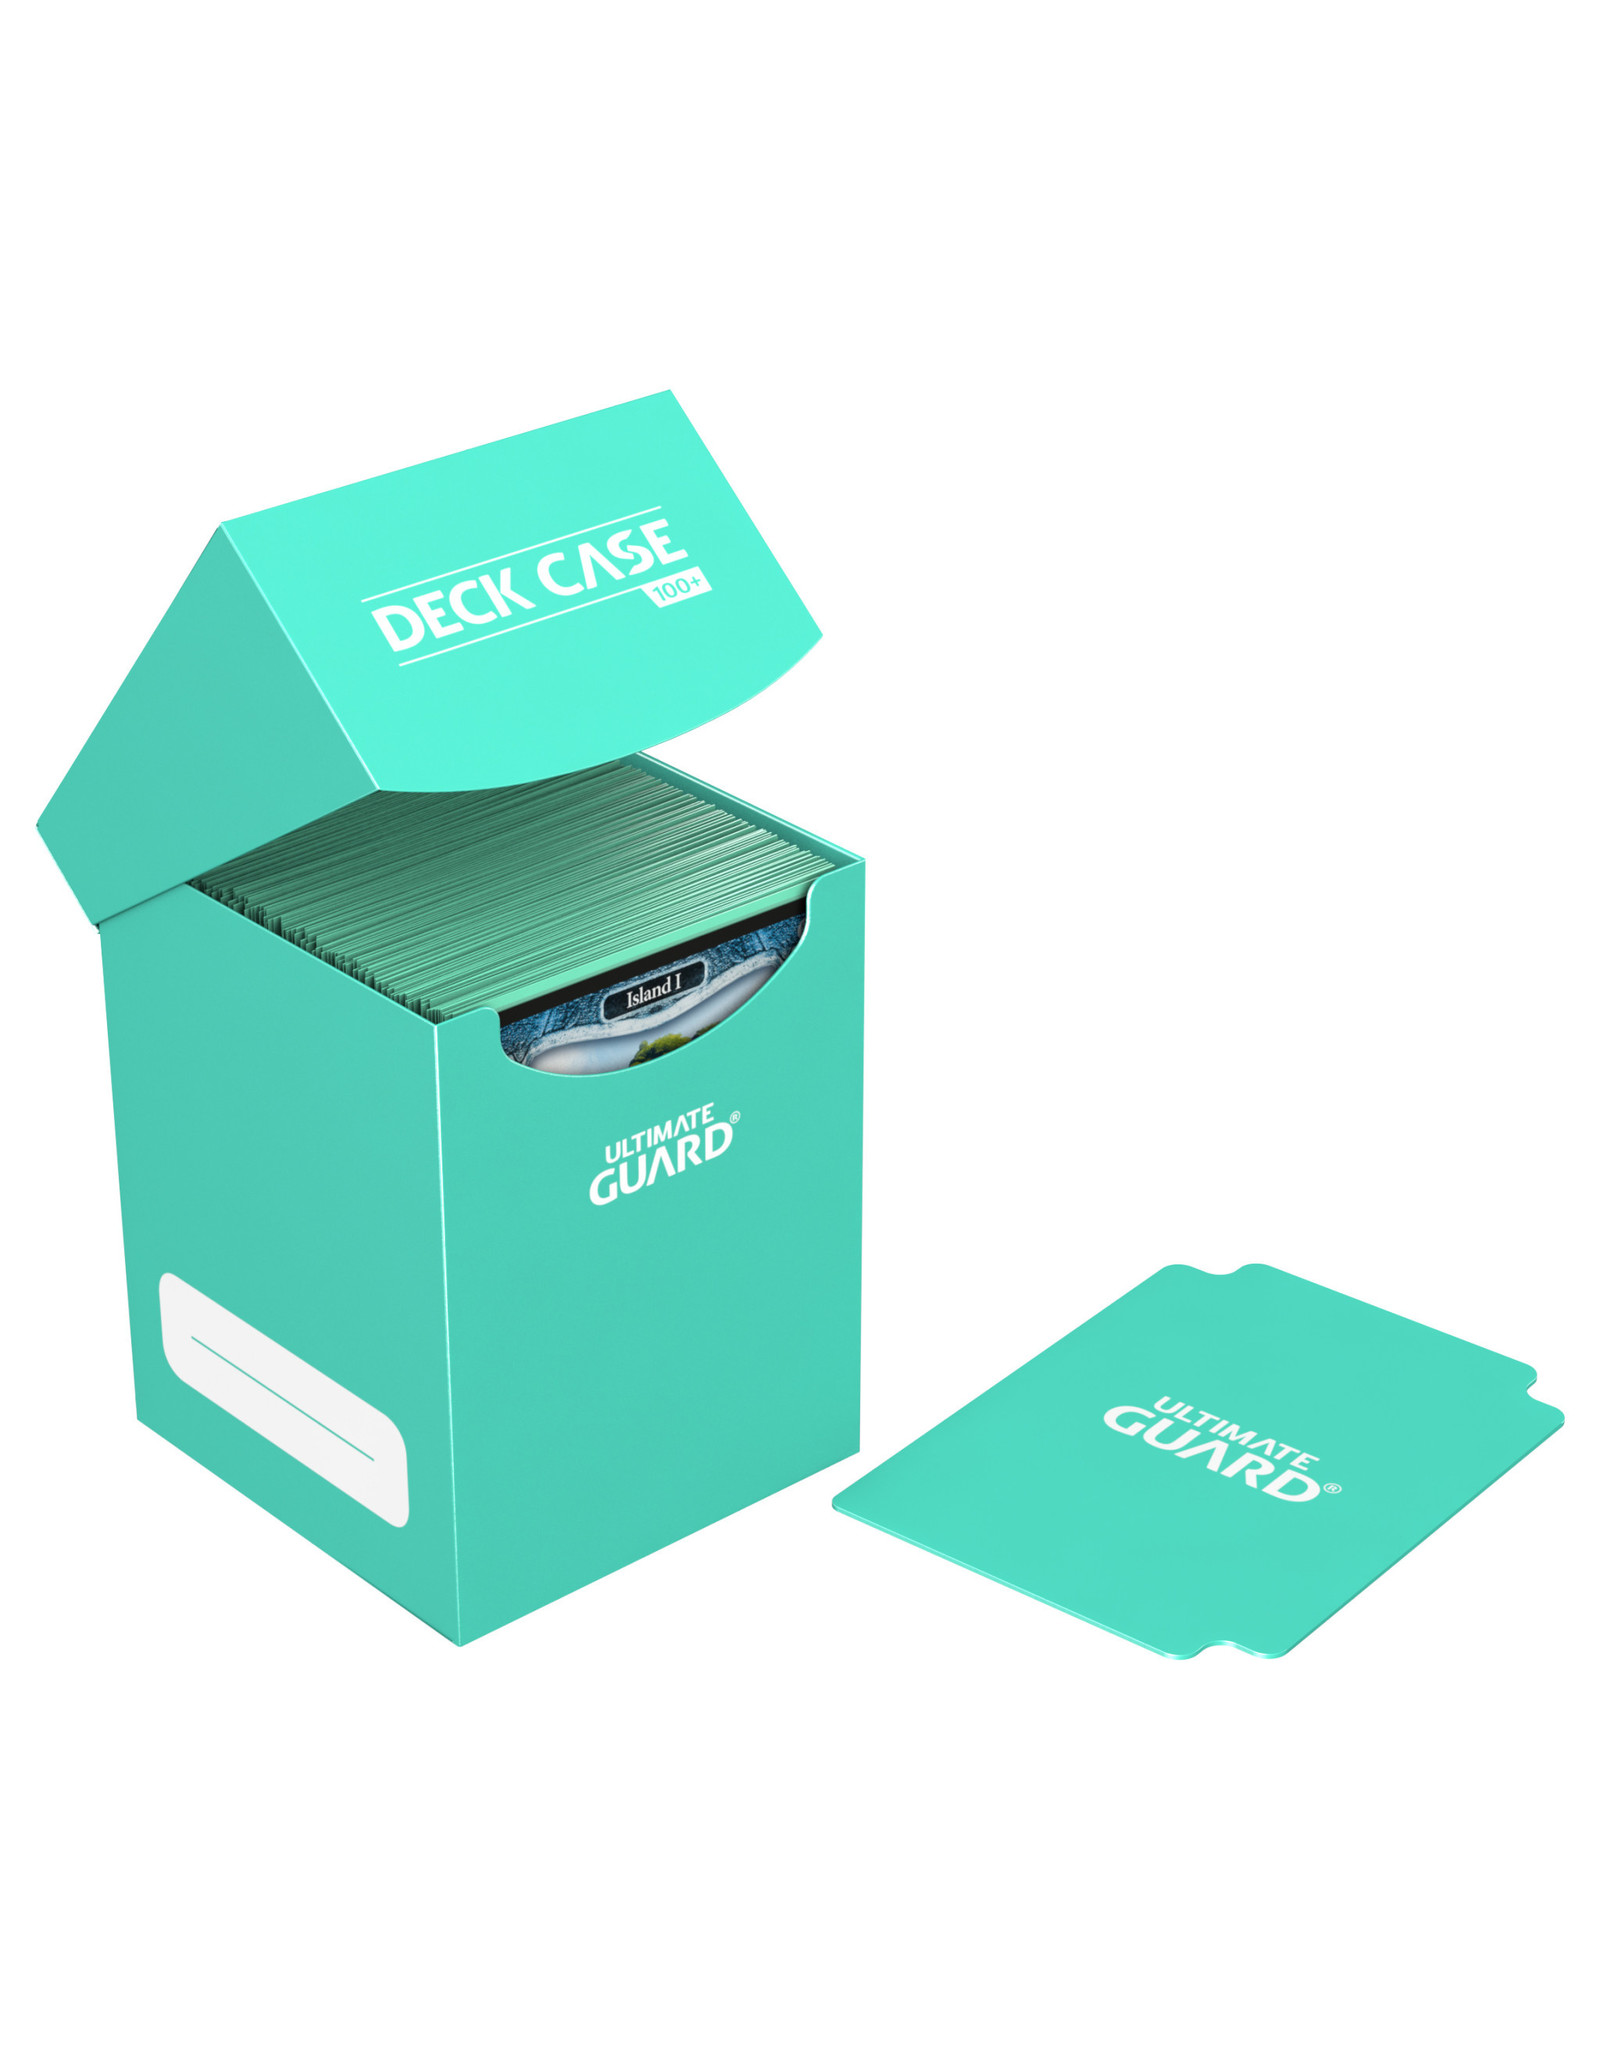 Ultimate Guard Deck Case 100+ Turquoise